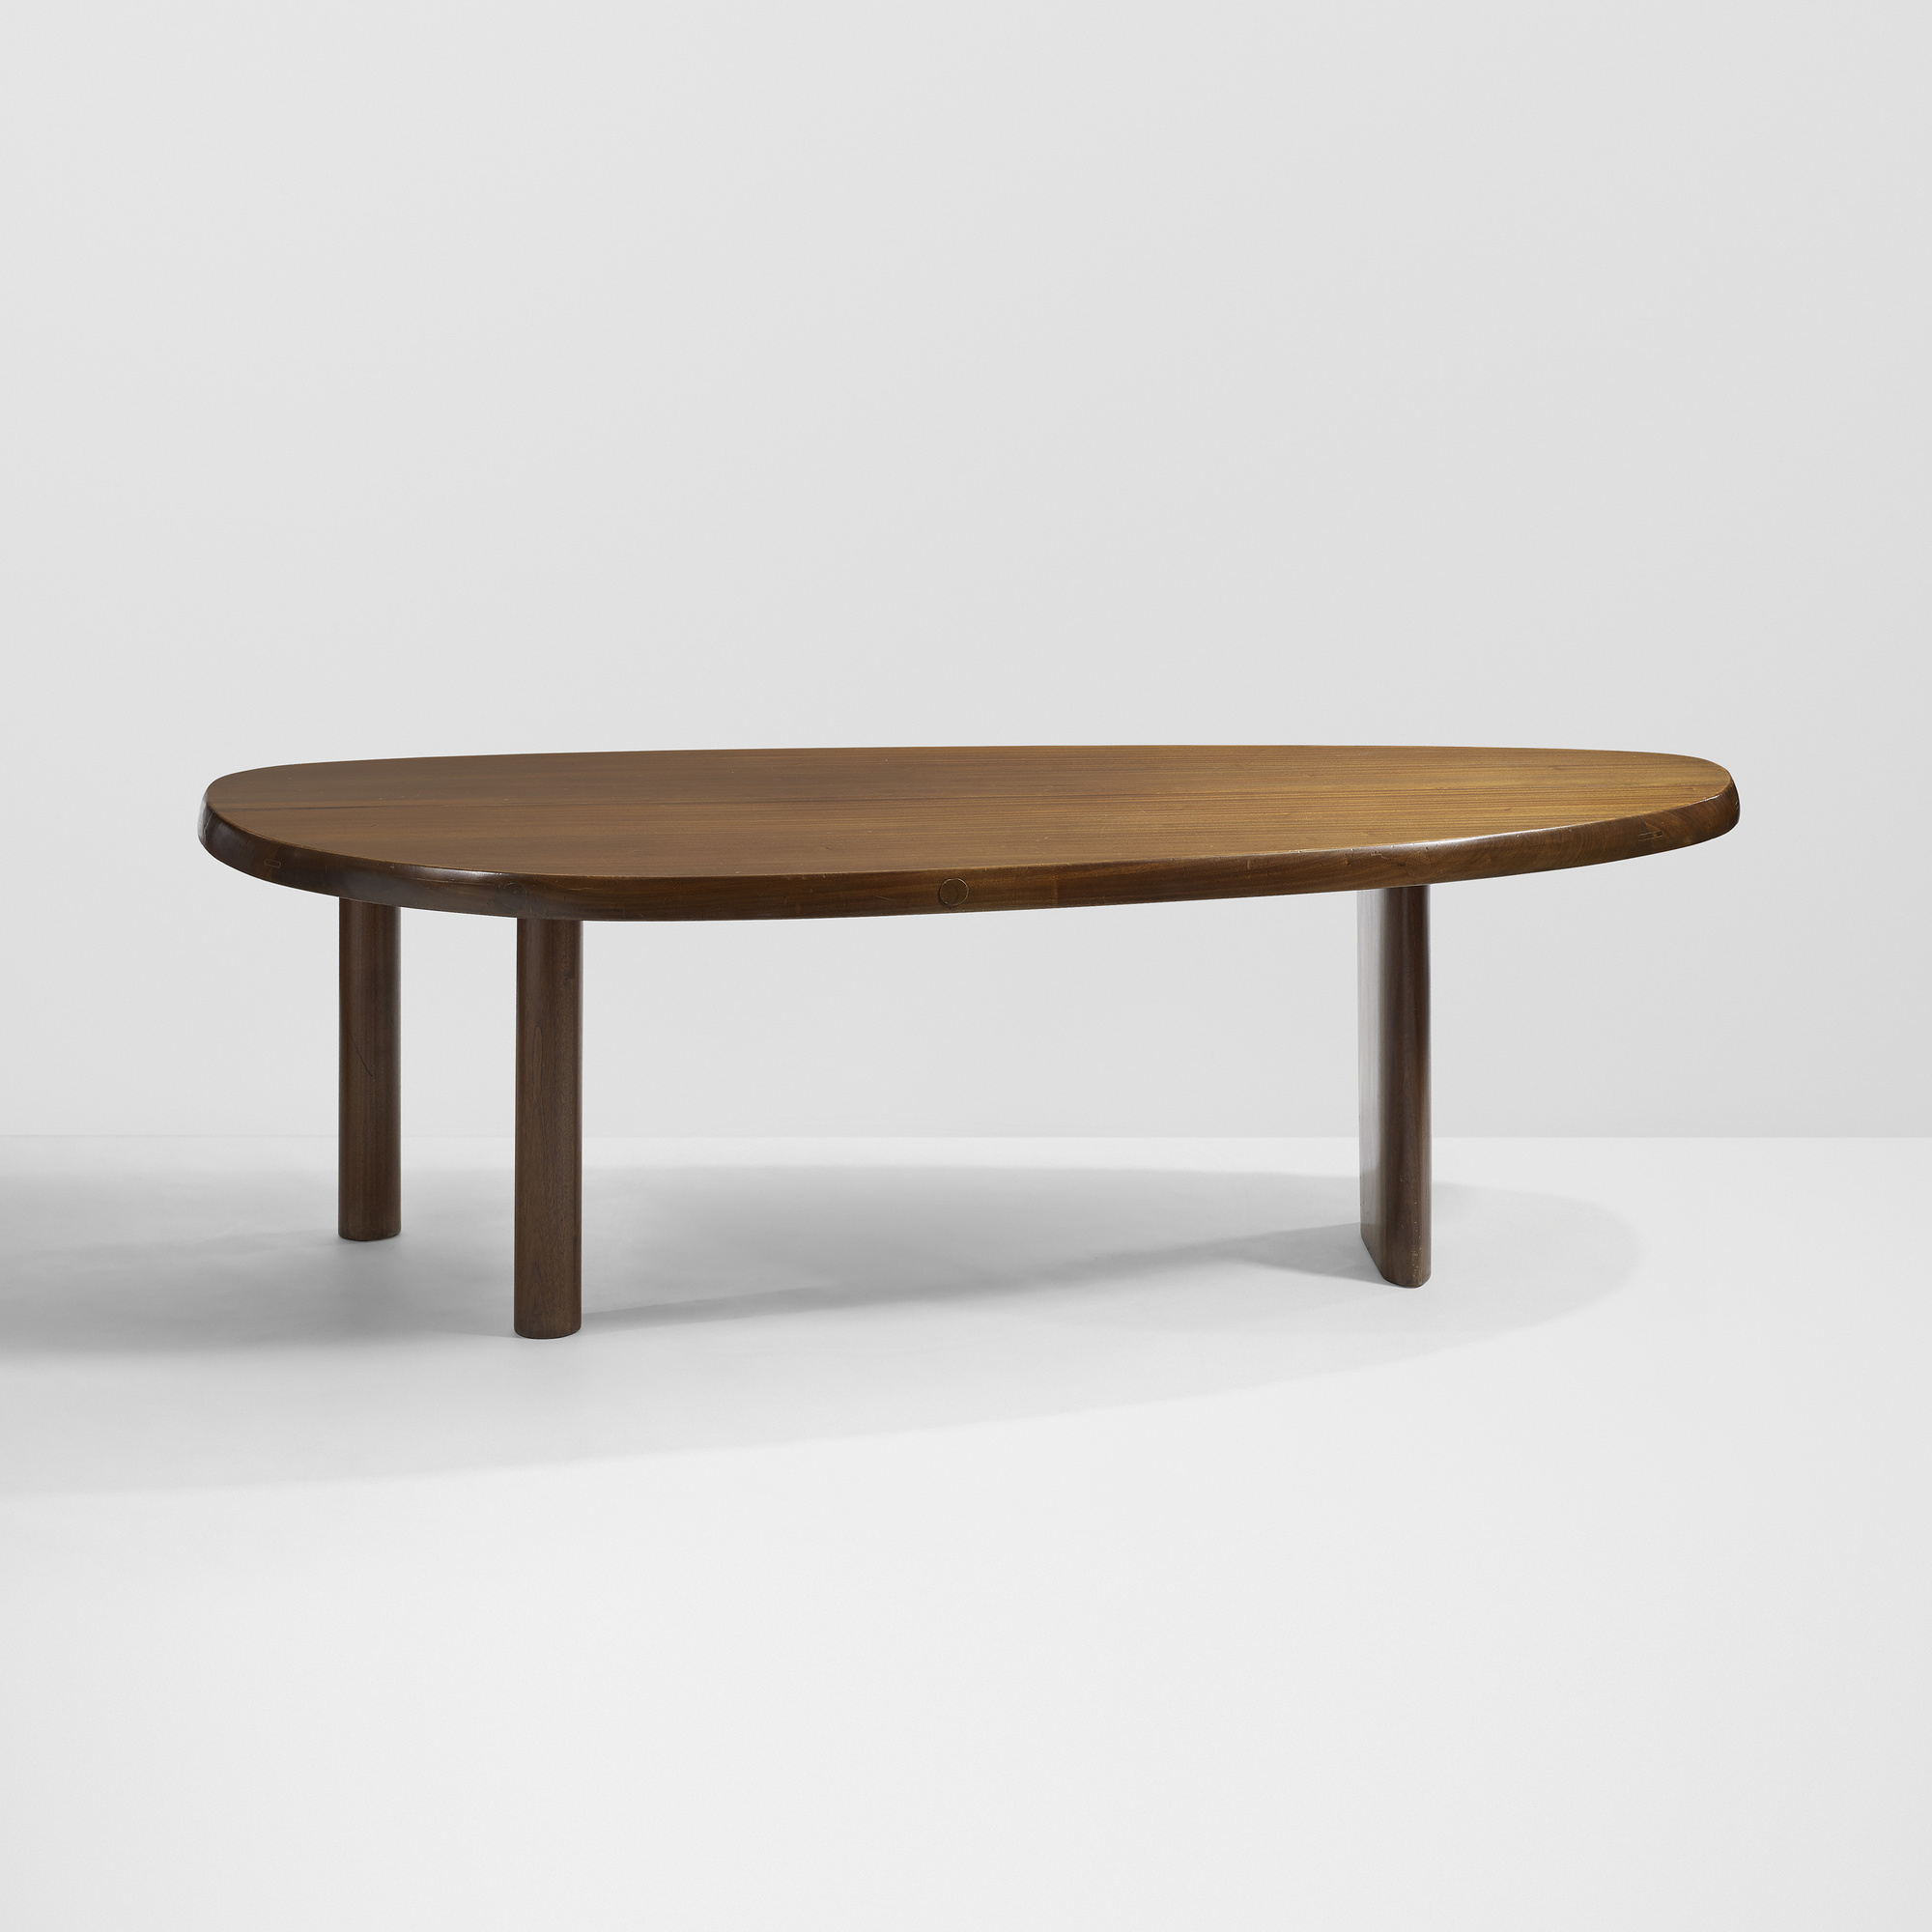 9 Charlotte Perriand Free form dining table Design